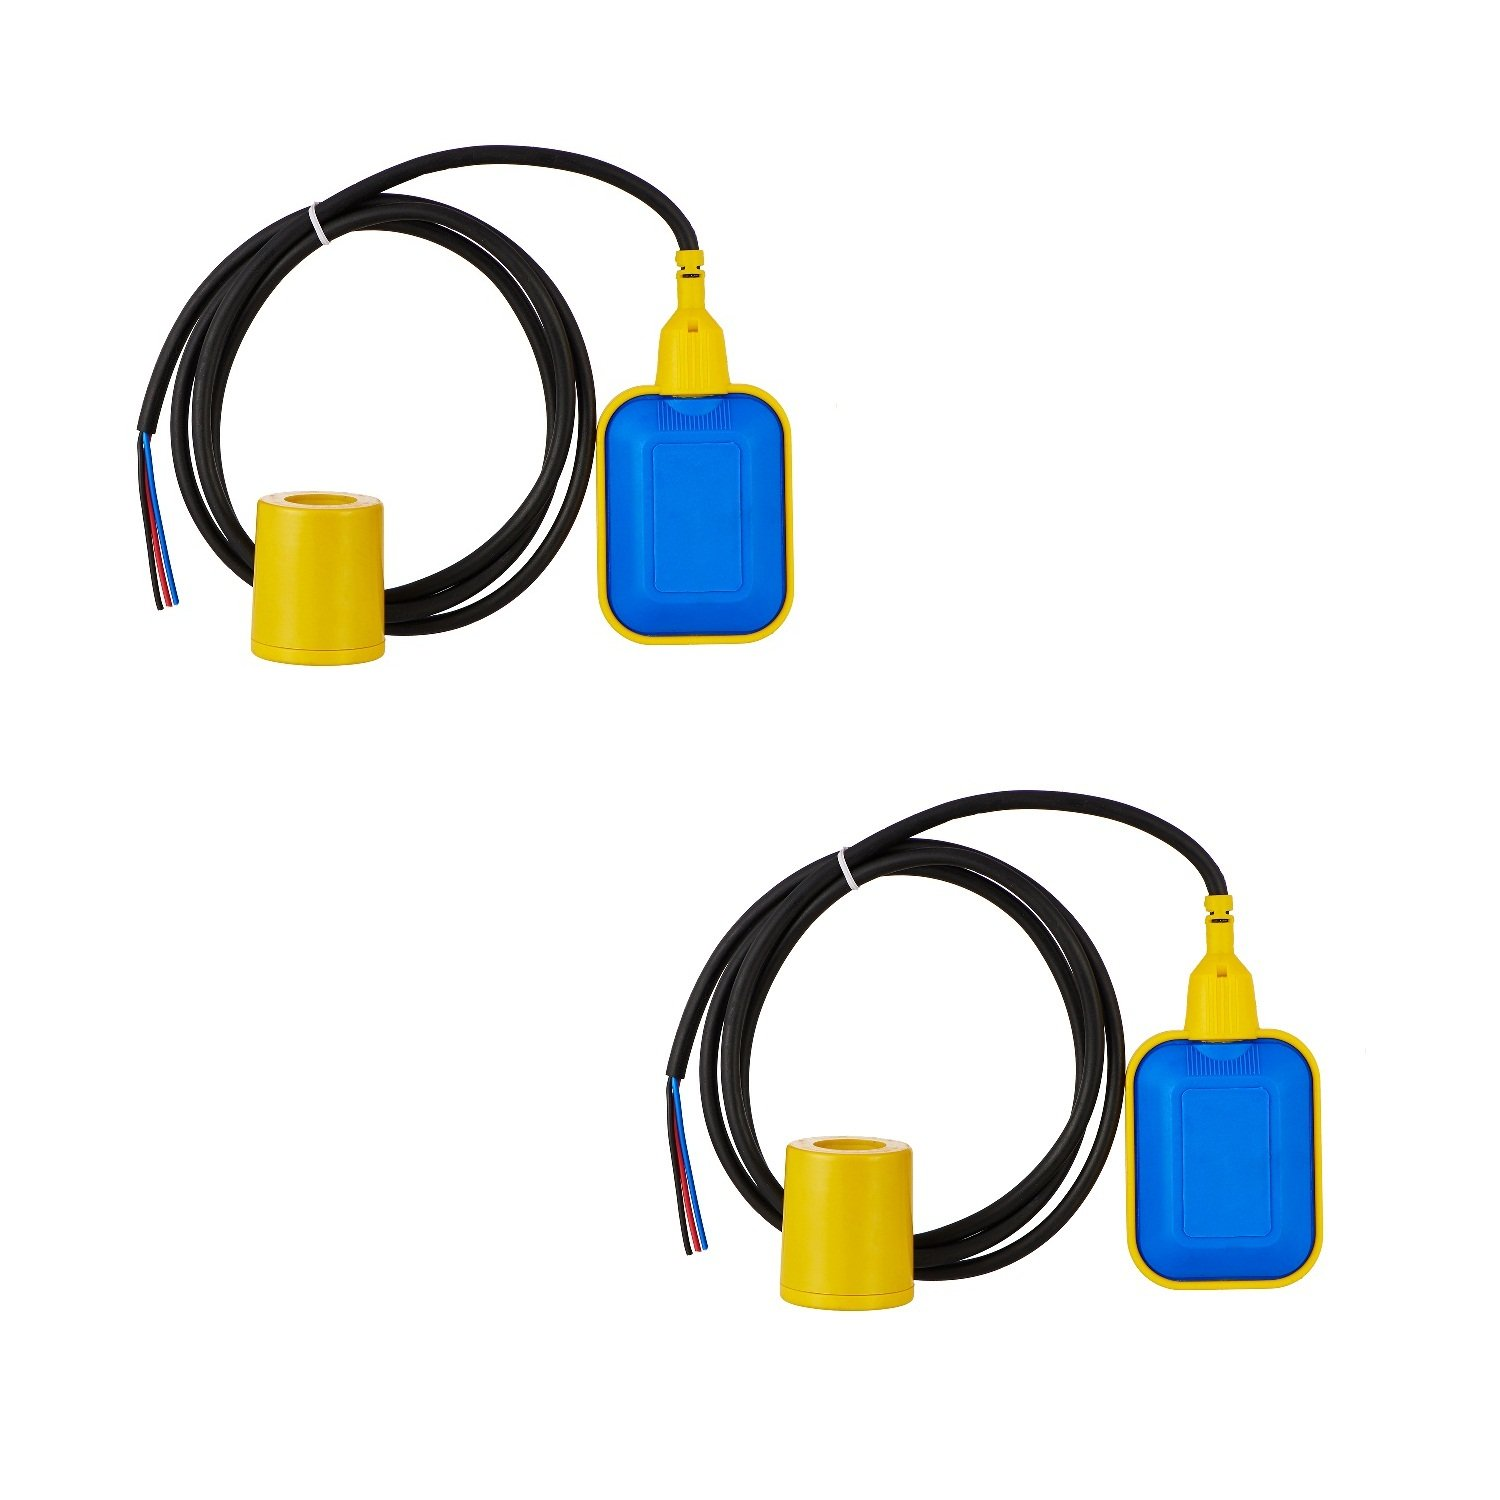 SCIENTIFIC DEVICES Cable Float Level Switch (2 m, Medium, Blue and Yellow)-Pack of 2 product image